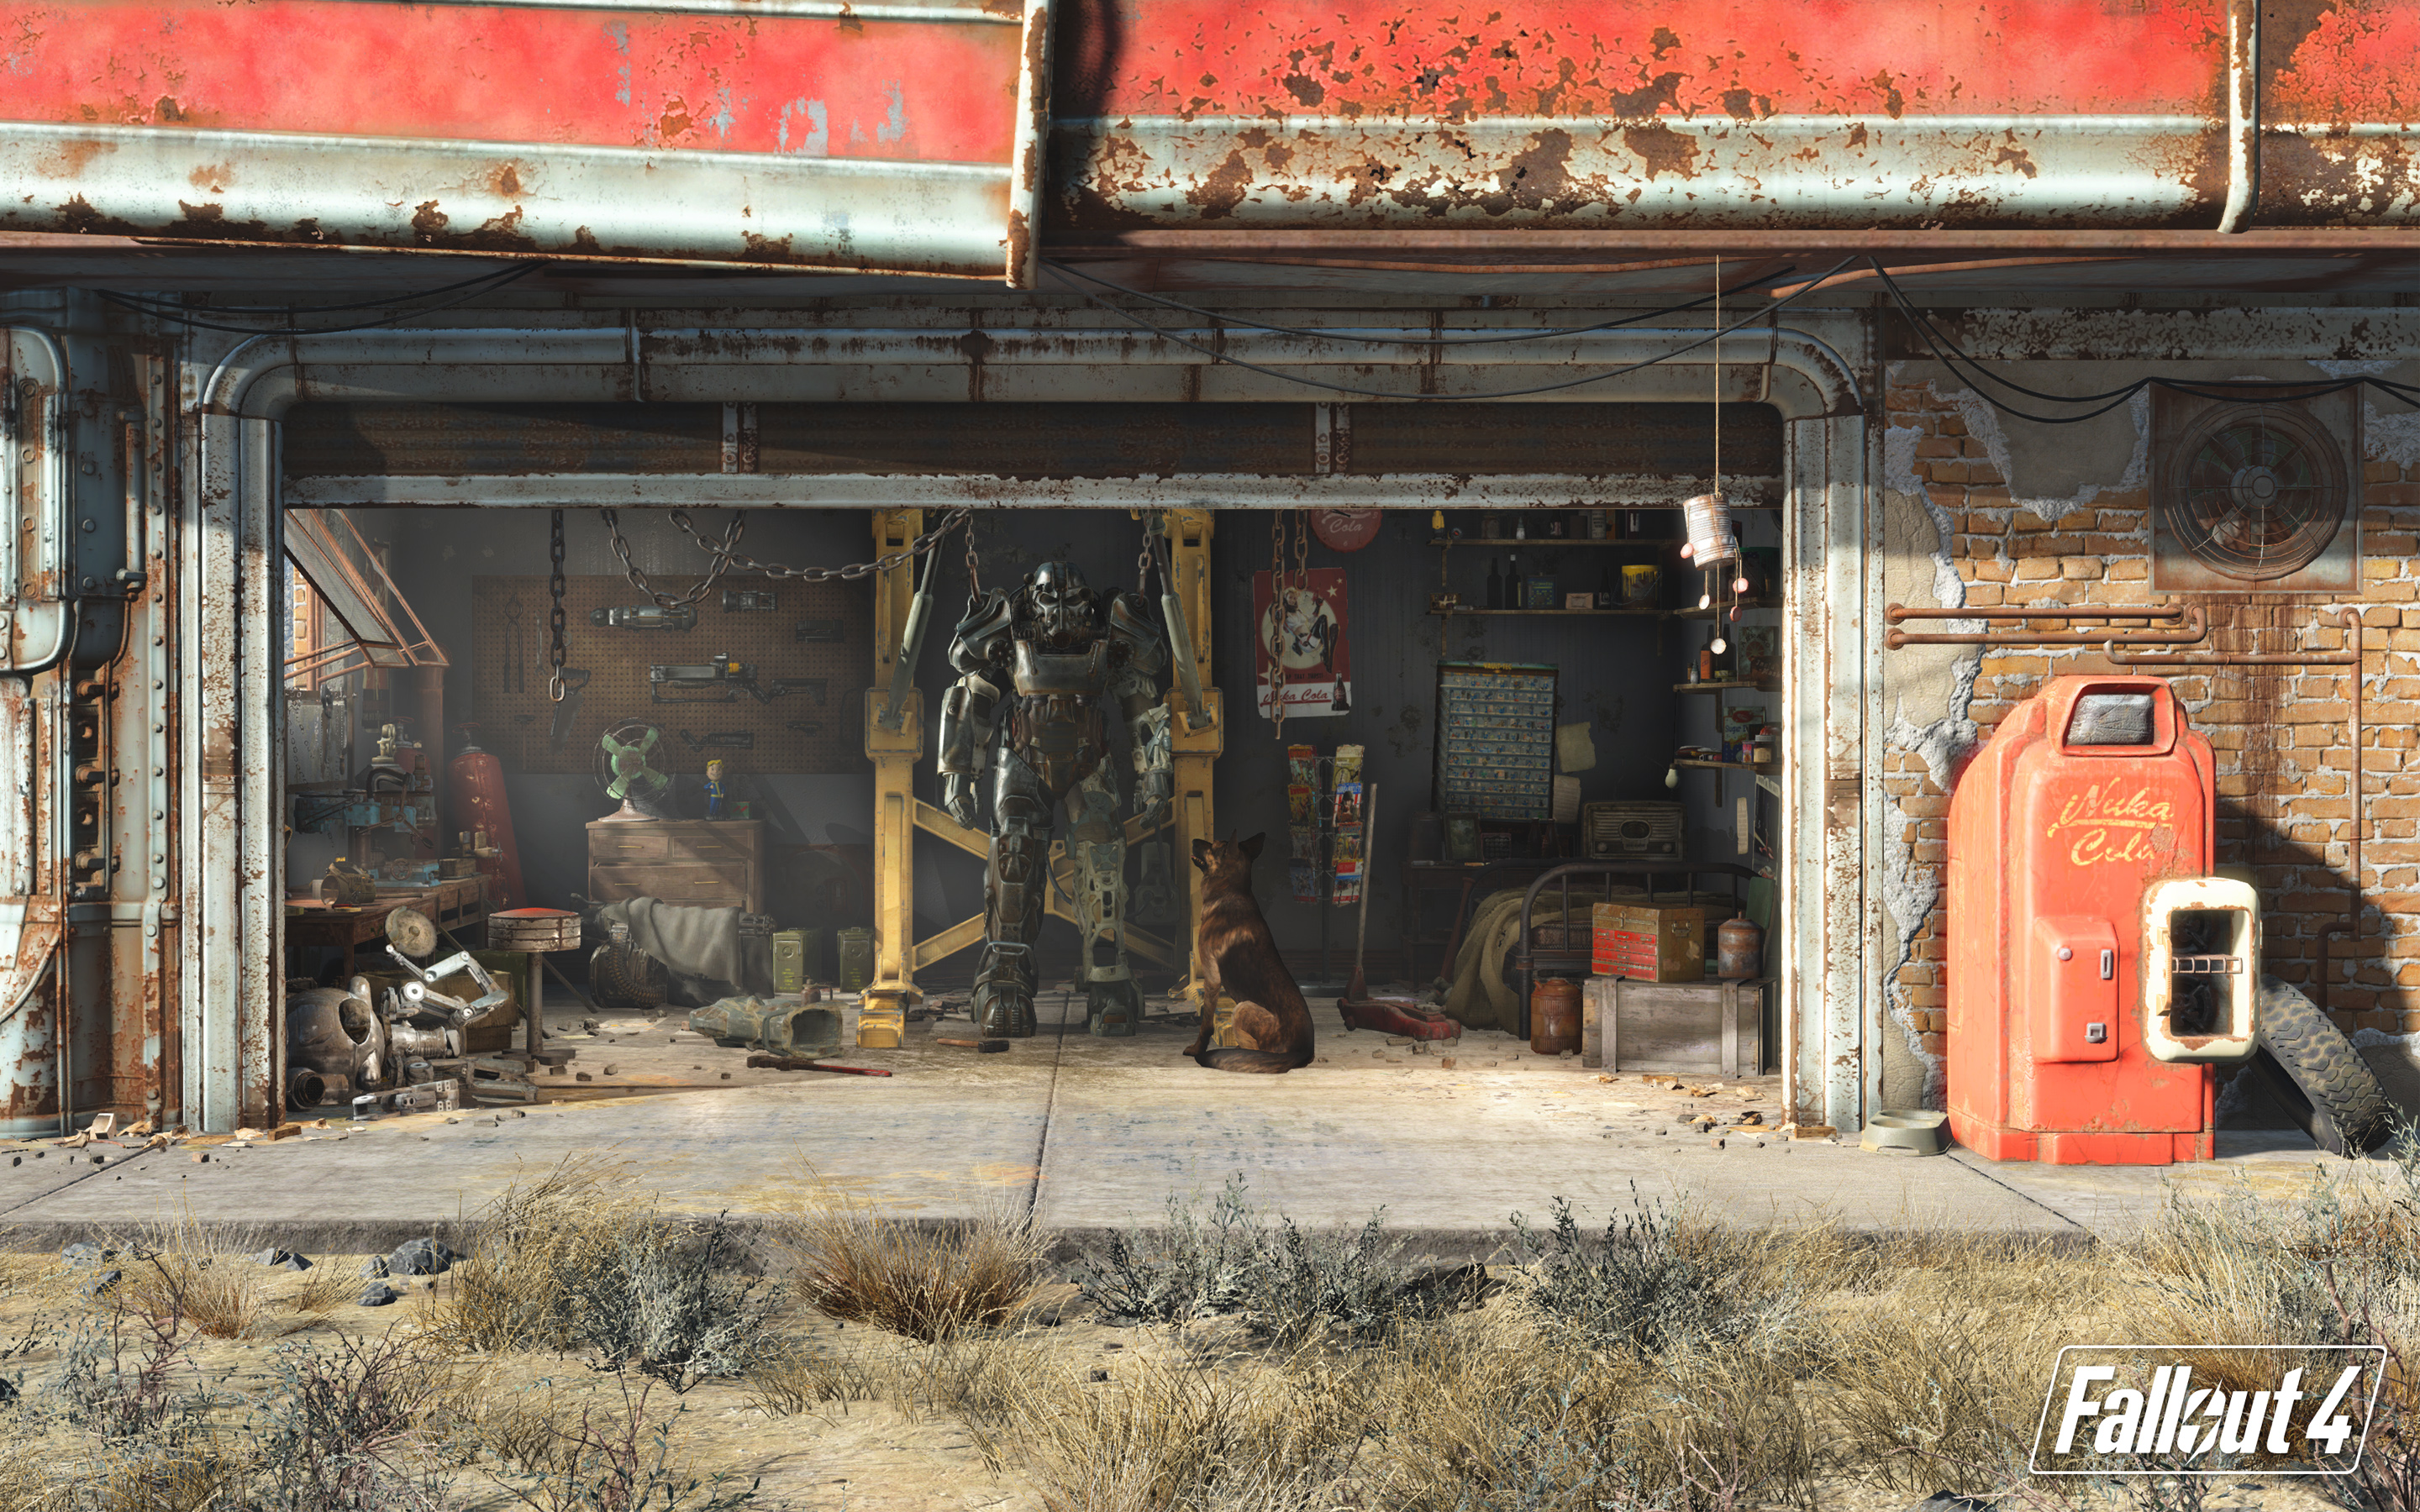 Fallout 4 Wallpapers HD Wallpapers 2880x1800